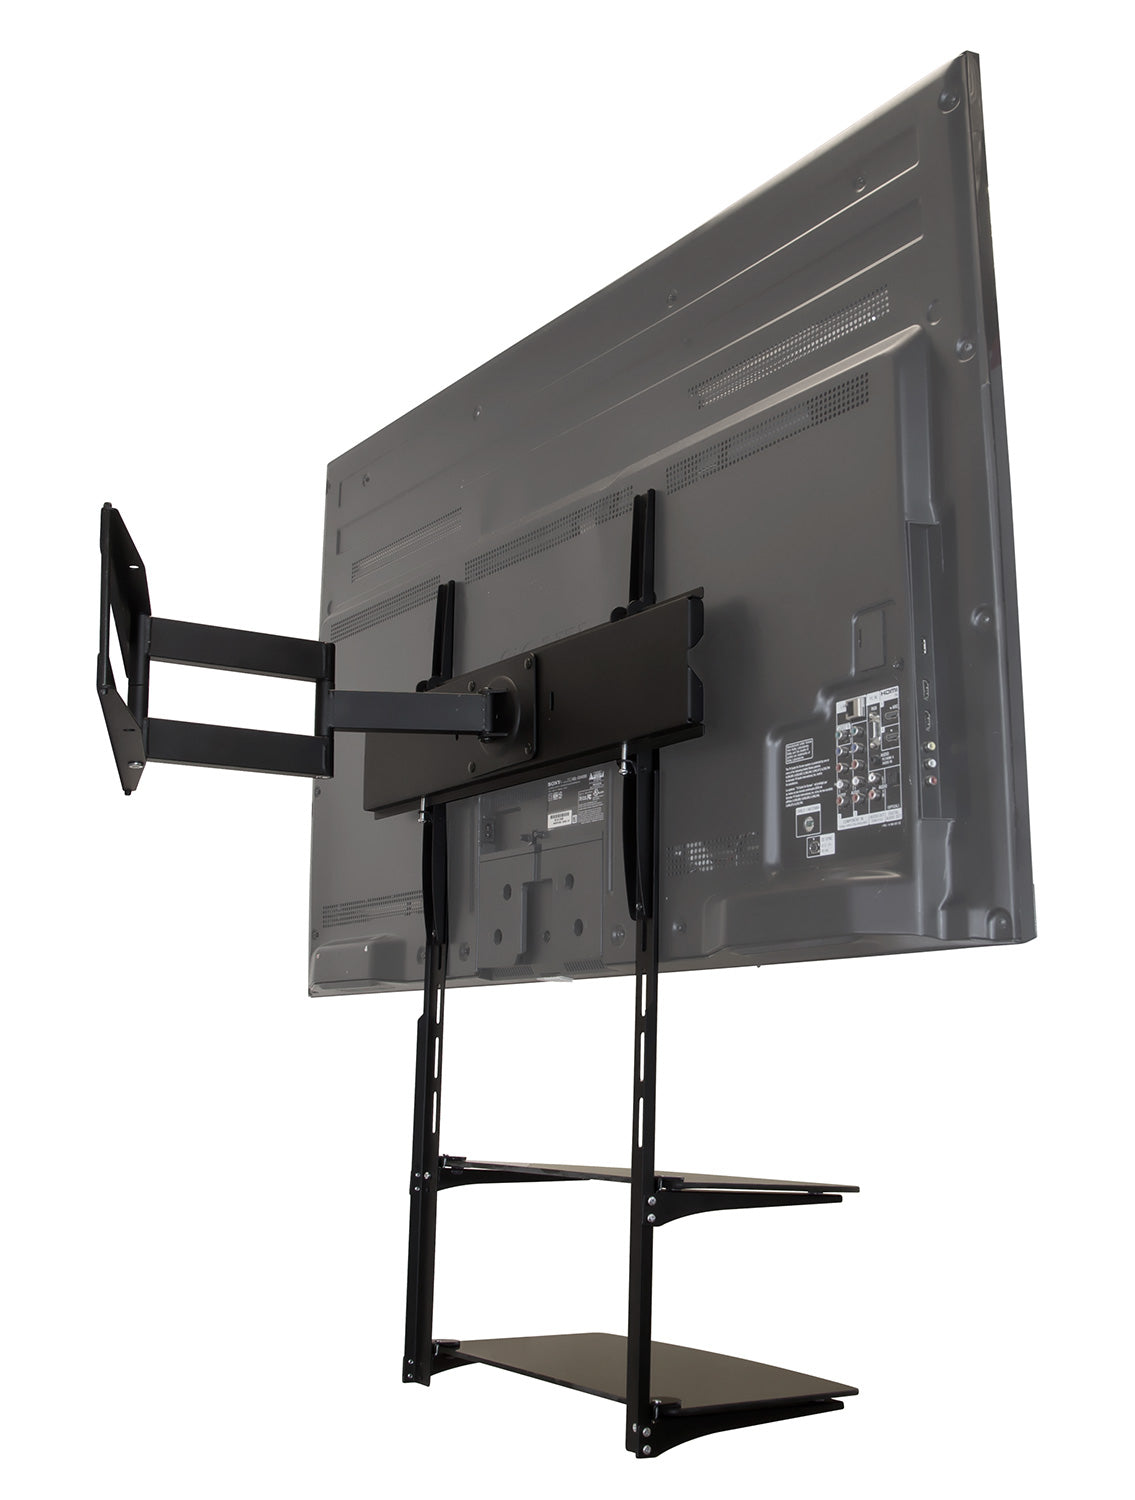 Wall Mounted Tv Shelving Unit W 2 Tempered Glass Shelves